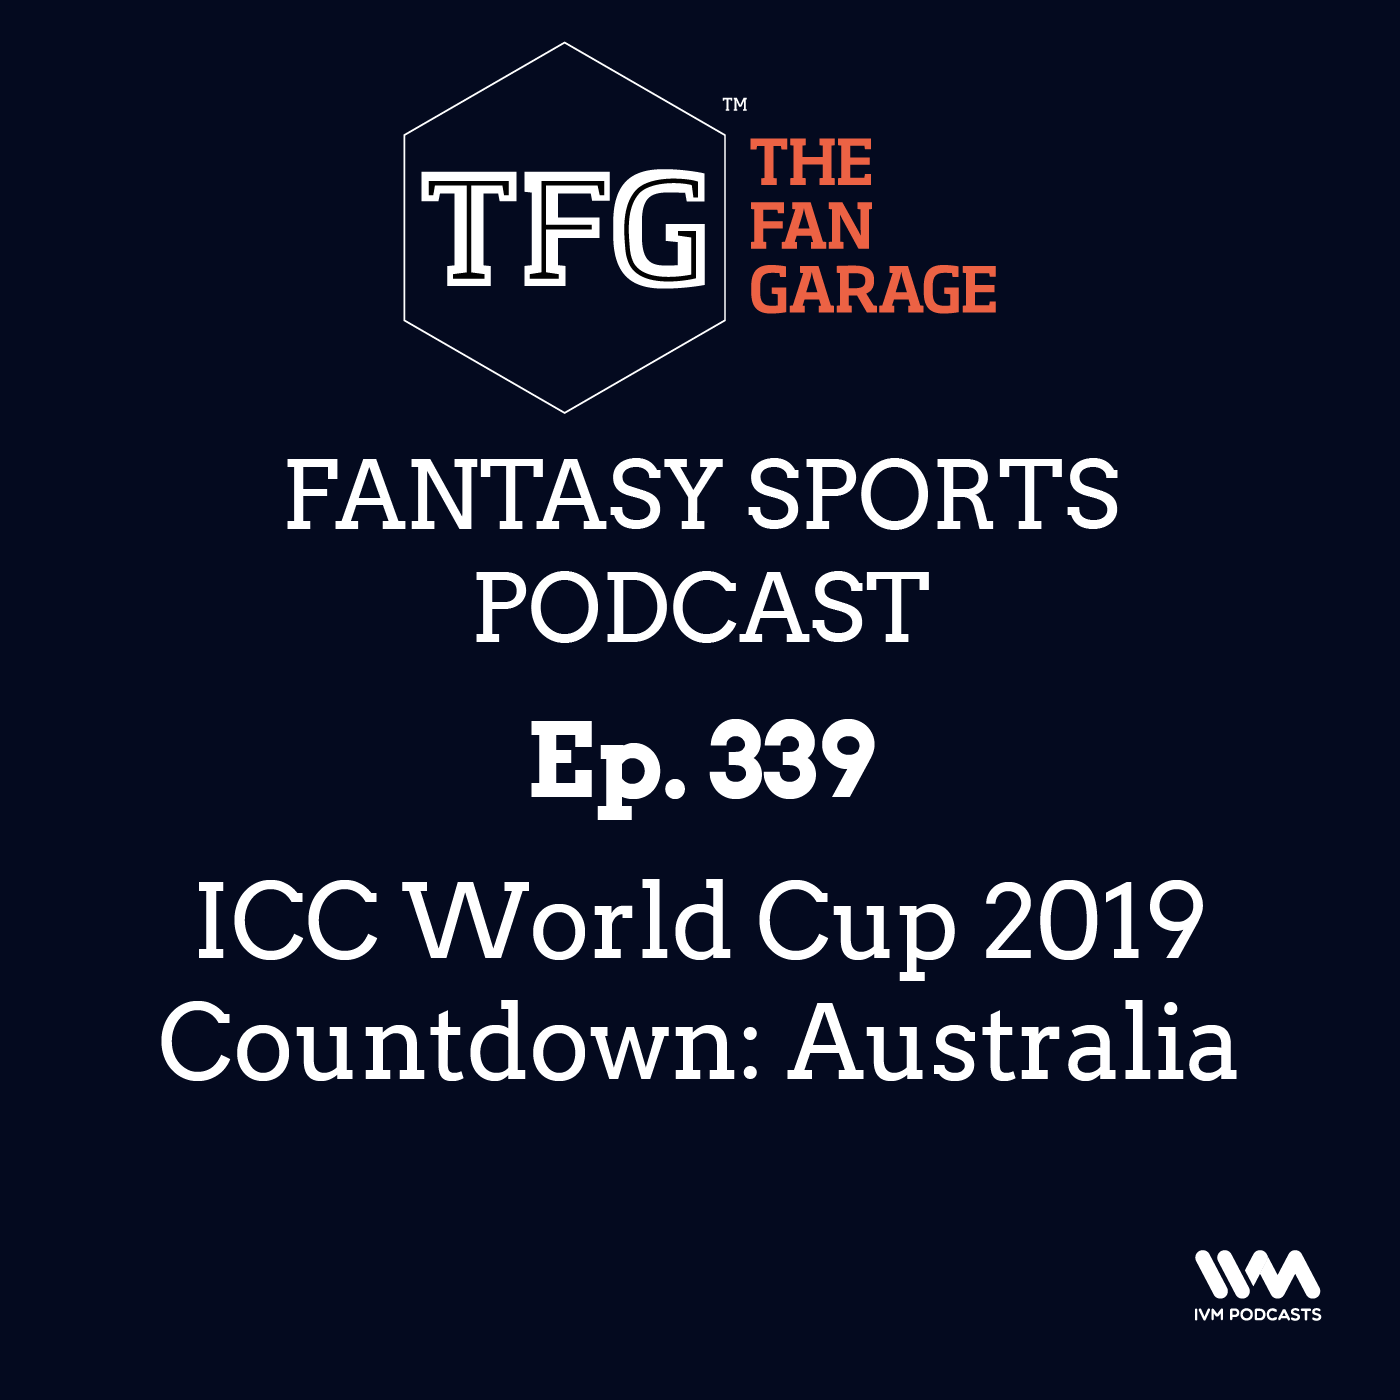 TFG Fantasy Sports Podcast Ep. 339: ICC World Cup 2019 Countdown: Australia